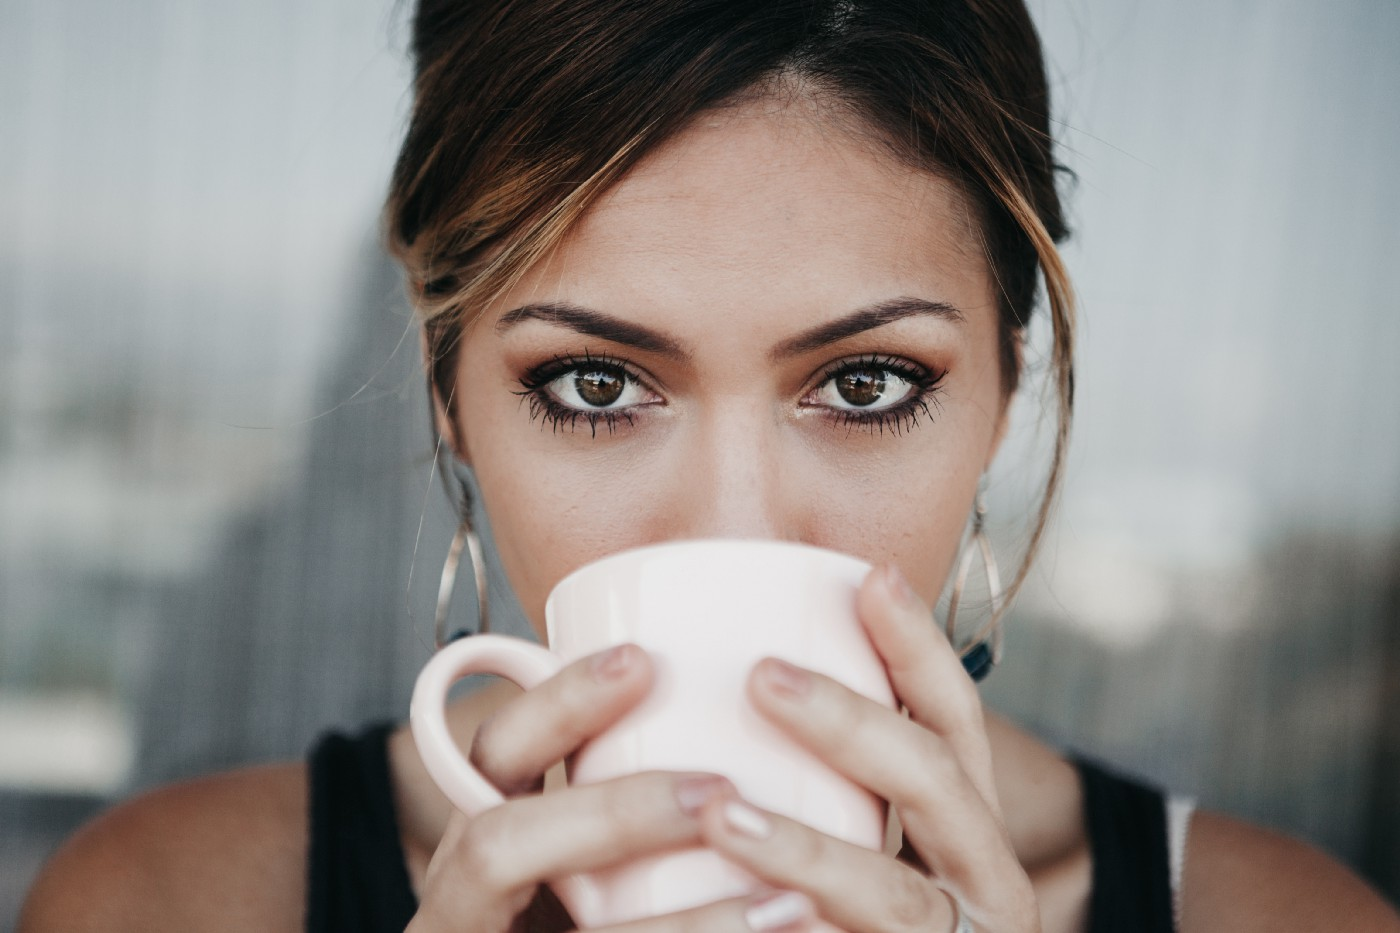 A Brunette with big brown eyes looking straight into the camera sipping coffee from a pink mug